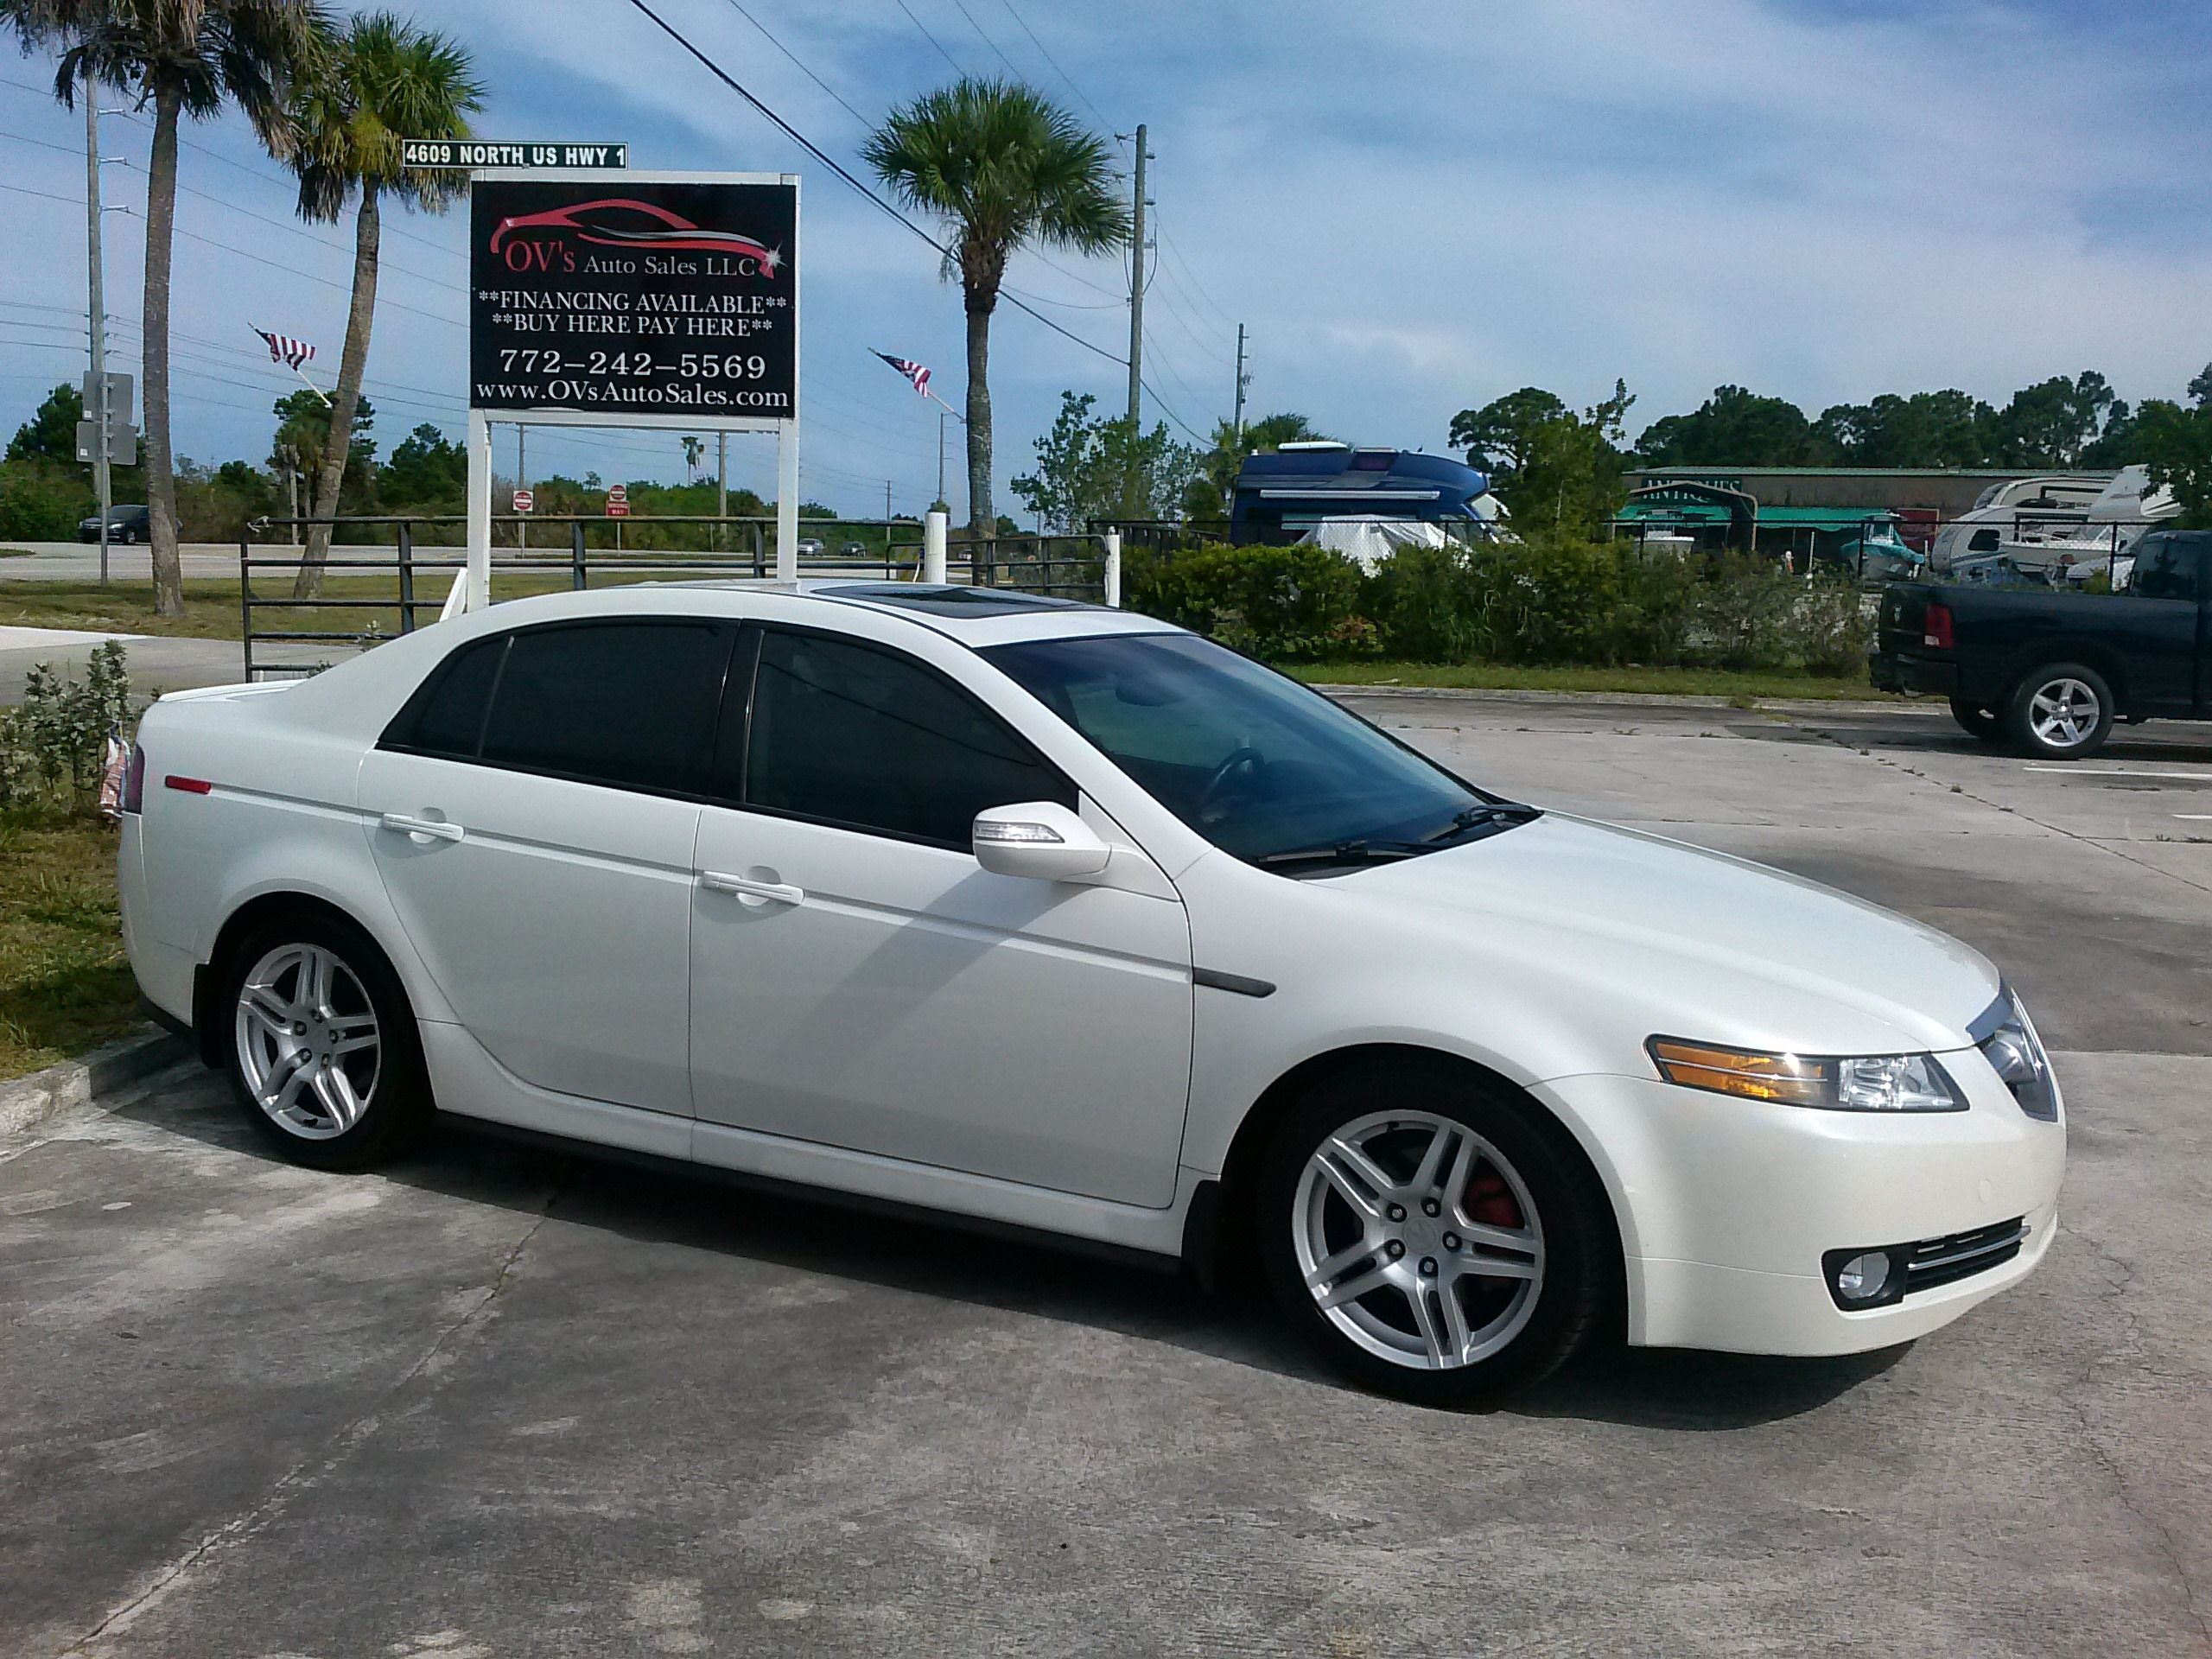 2007 Acura Tl Base Free Carfax Report Excellent Condition Only